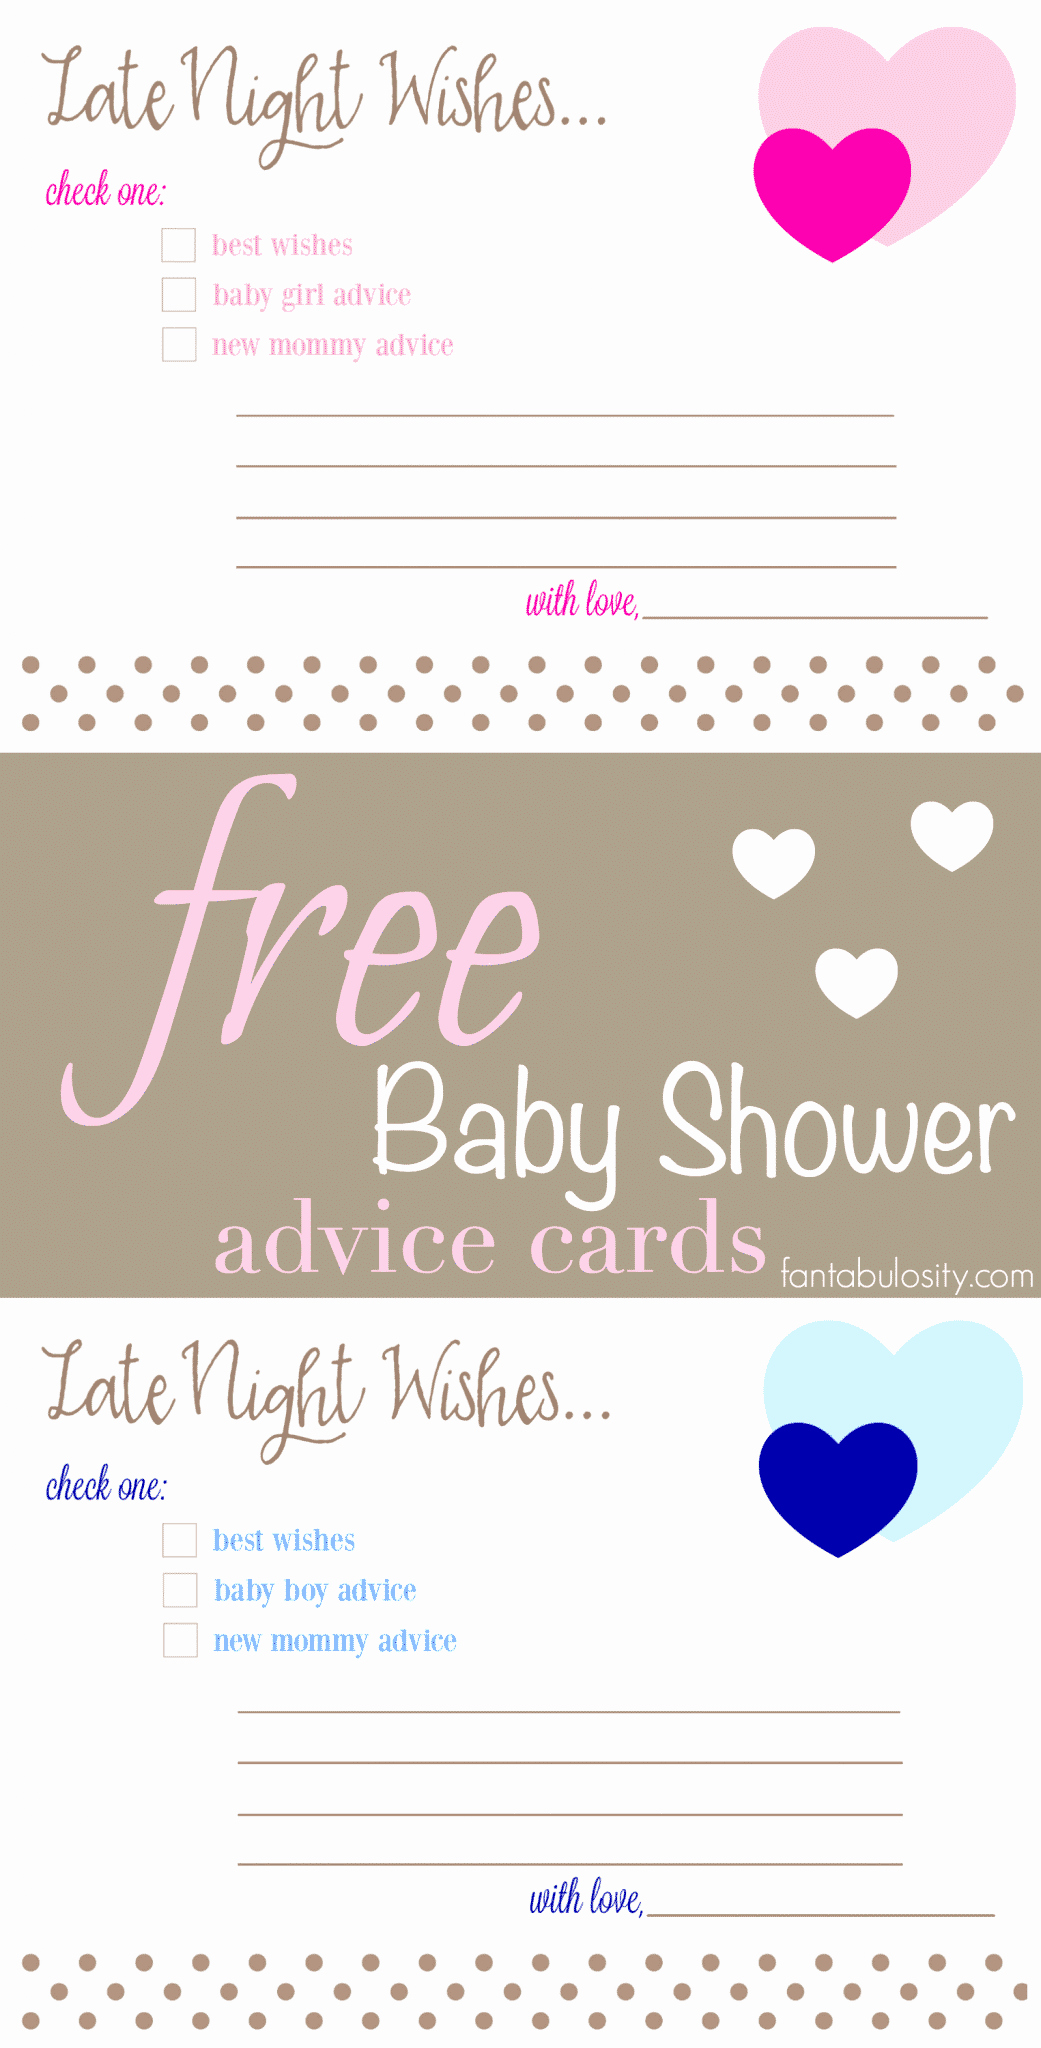 Baby Shower Card to Print Inspirational Free Printable Baby Shower Advice & Best Wishes Cards